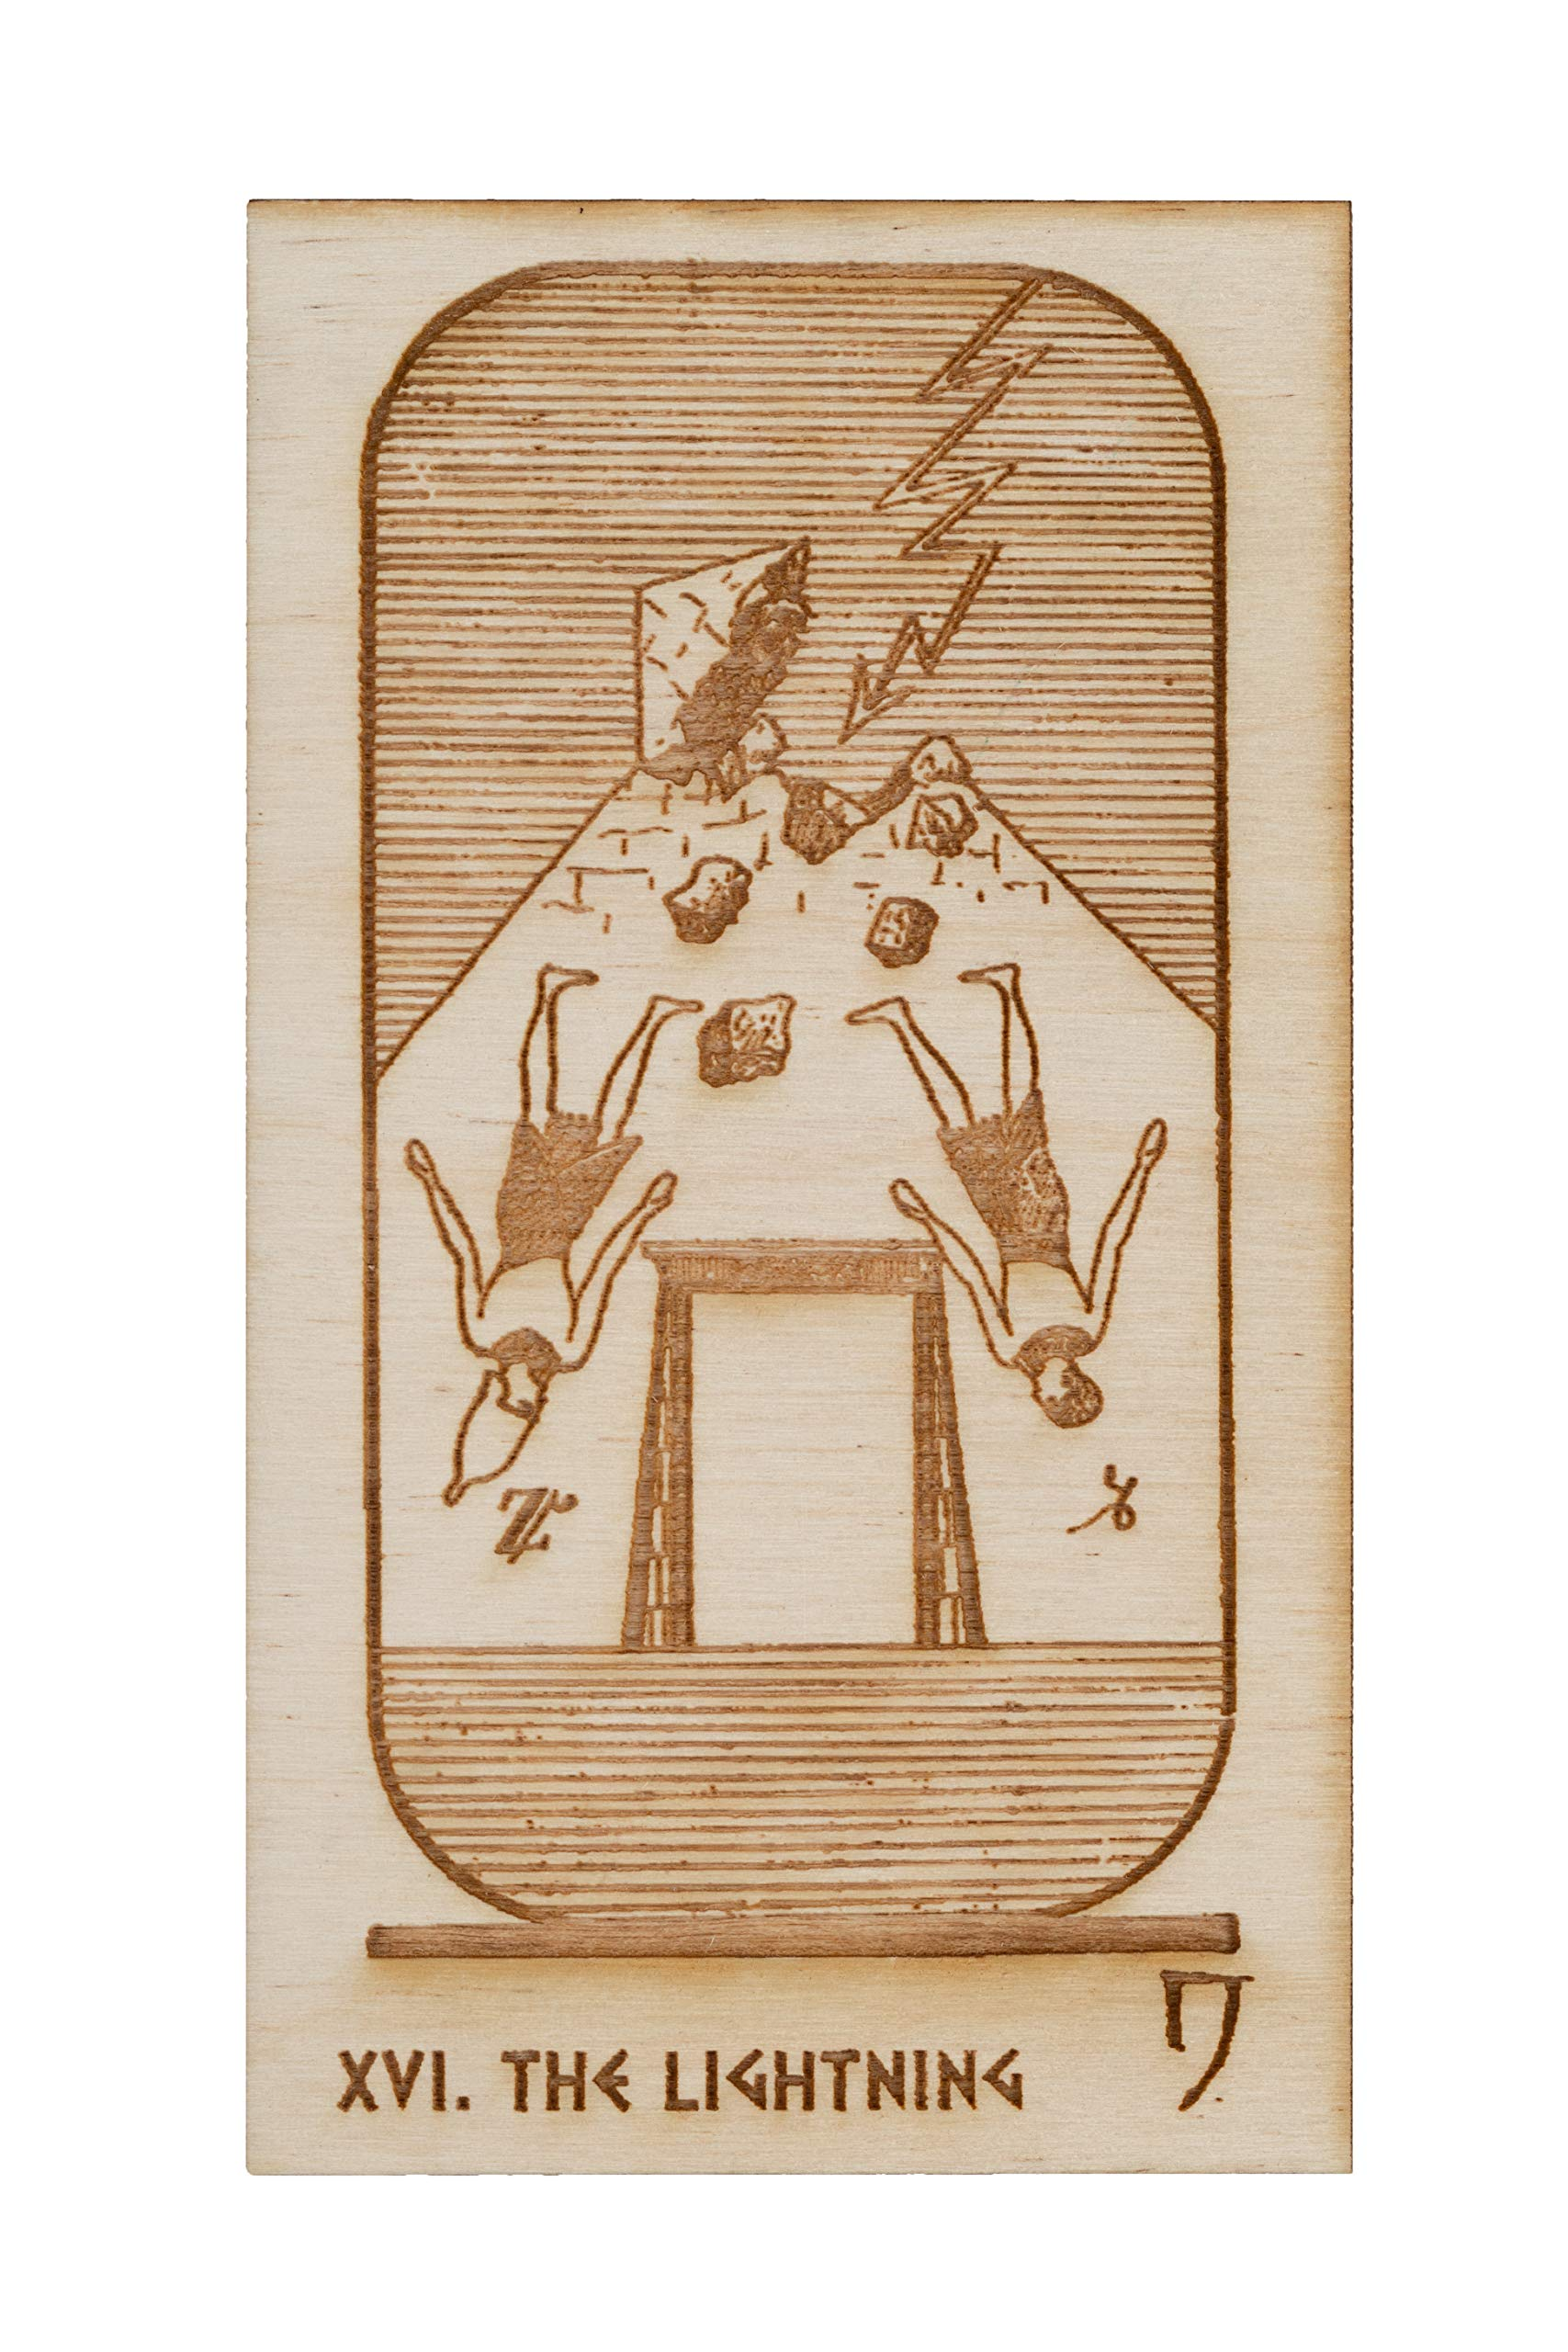 LumEngrave Wood Engraved Egyptian Tarot Deck Historically Accurate Early 20th Century Tarot Deck | 22 Card Major Arcana Egypt Gift Occult Gift Mystic by LumEngrave (Image #2)